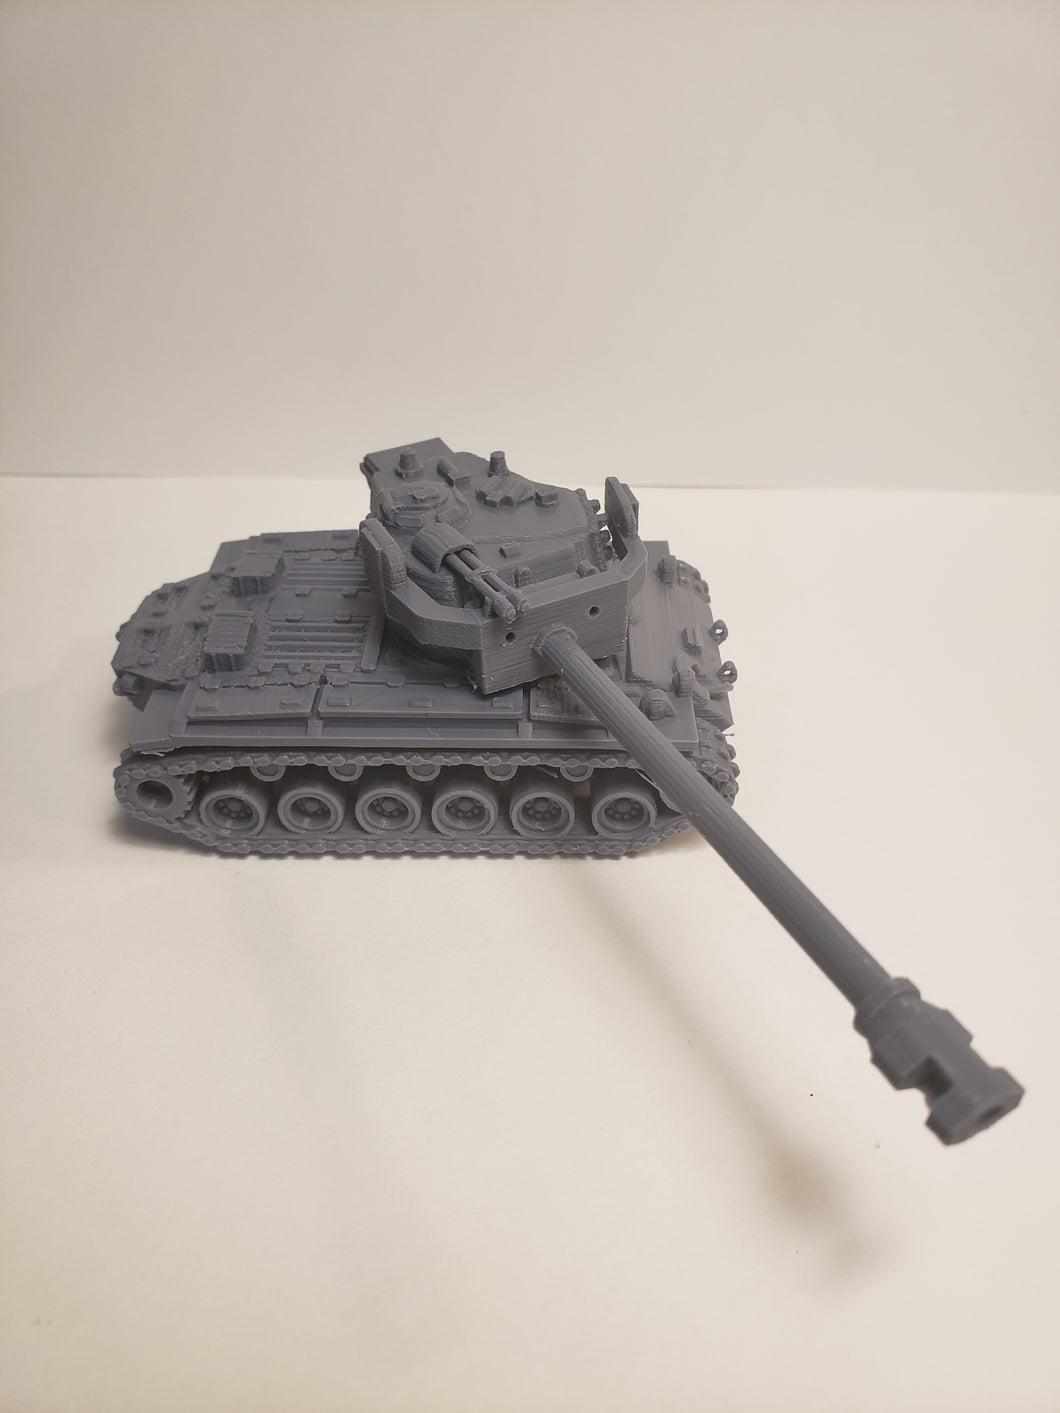 1/72 1/87 1/144 1/100 1/56 1/48 1/200  Super Pershing  Scale WWII Model Tank